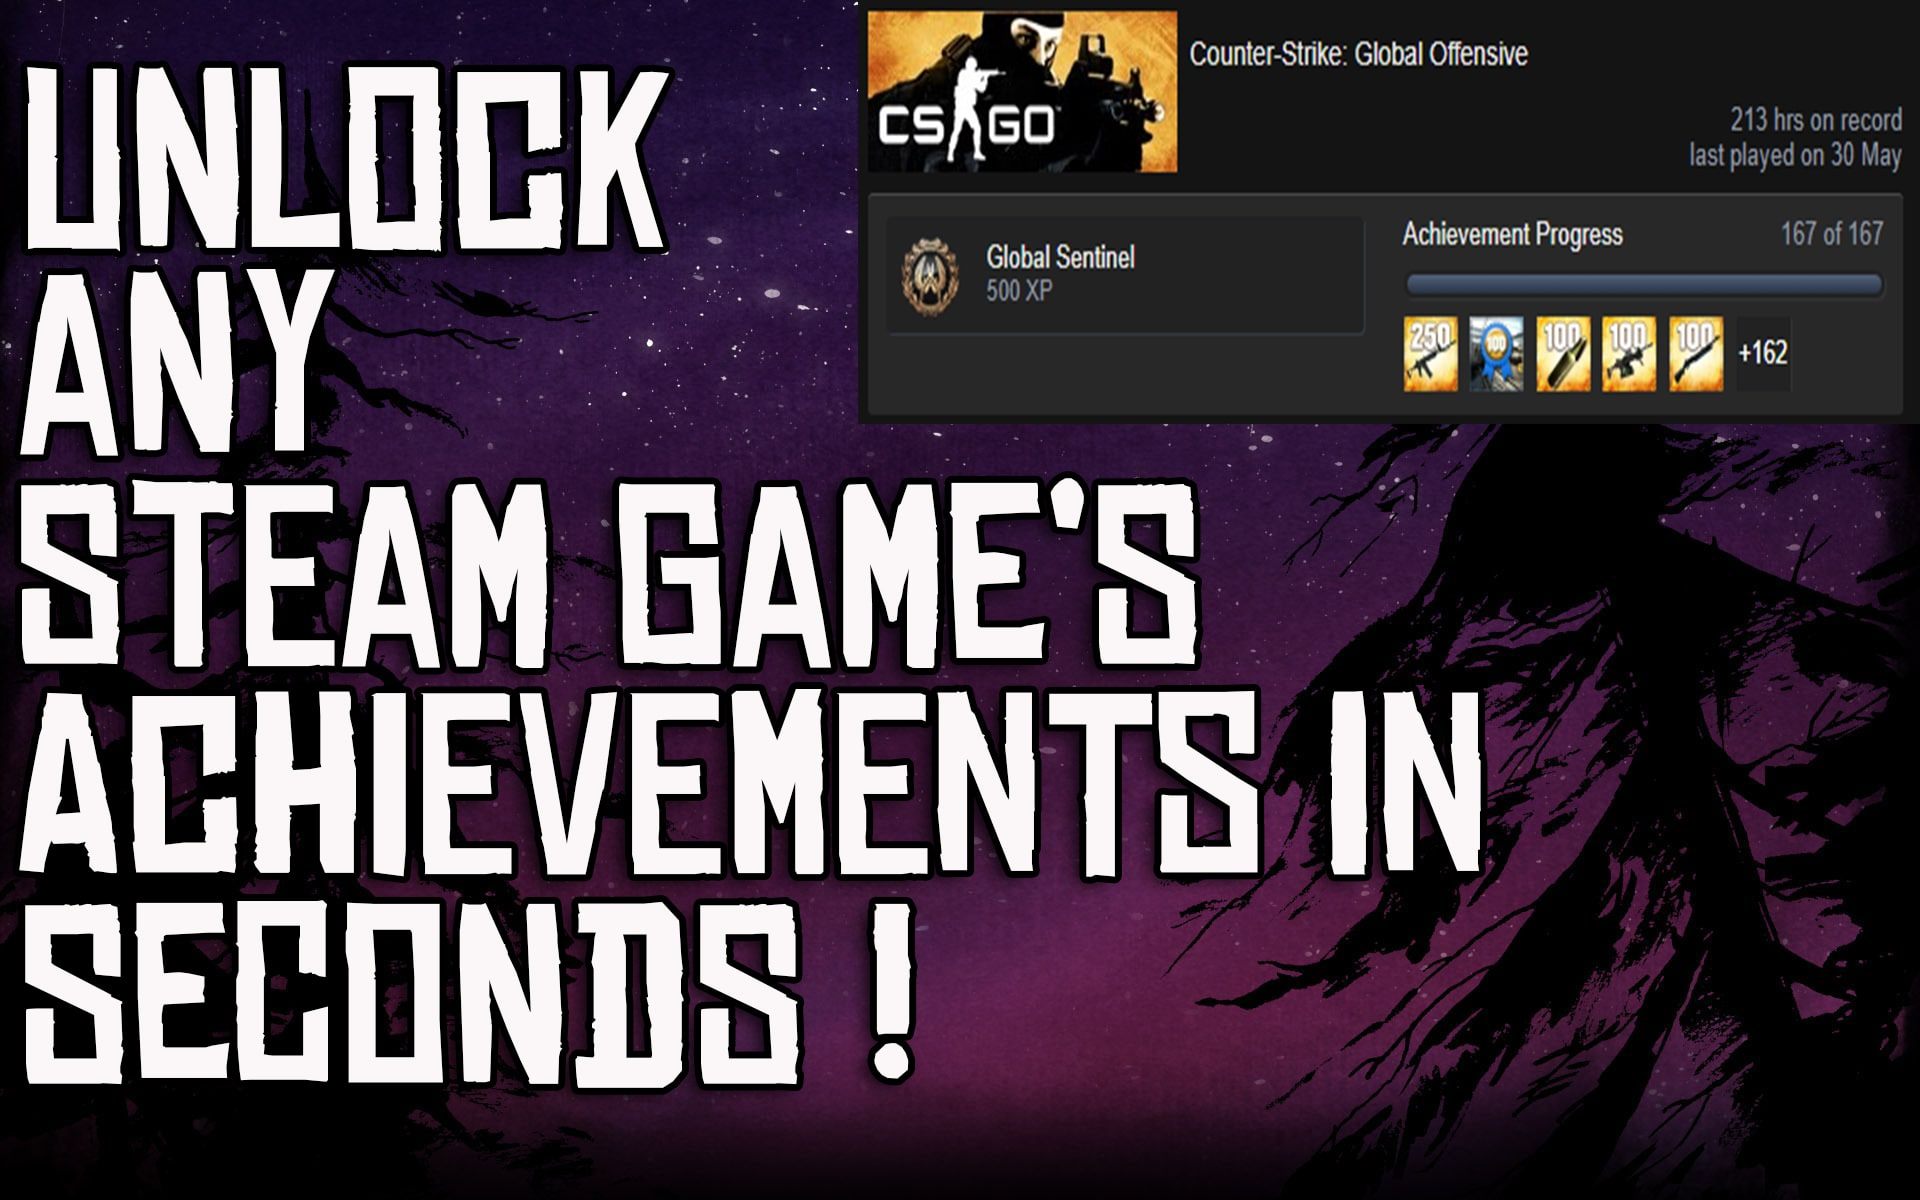 Here's how you can complete any STEAM GAME's achievements! 2